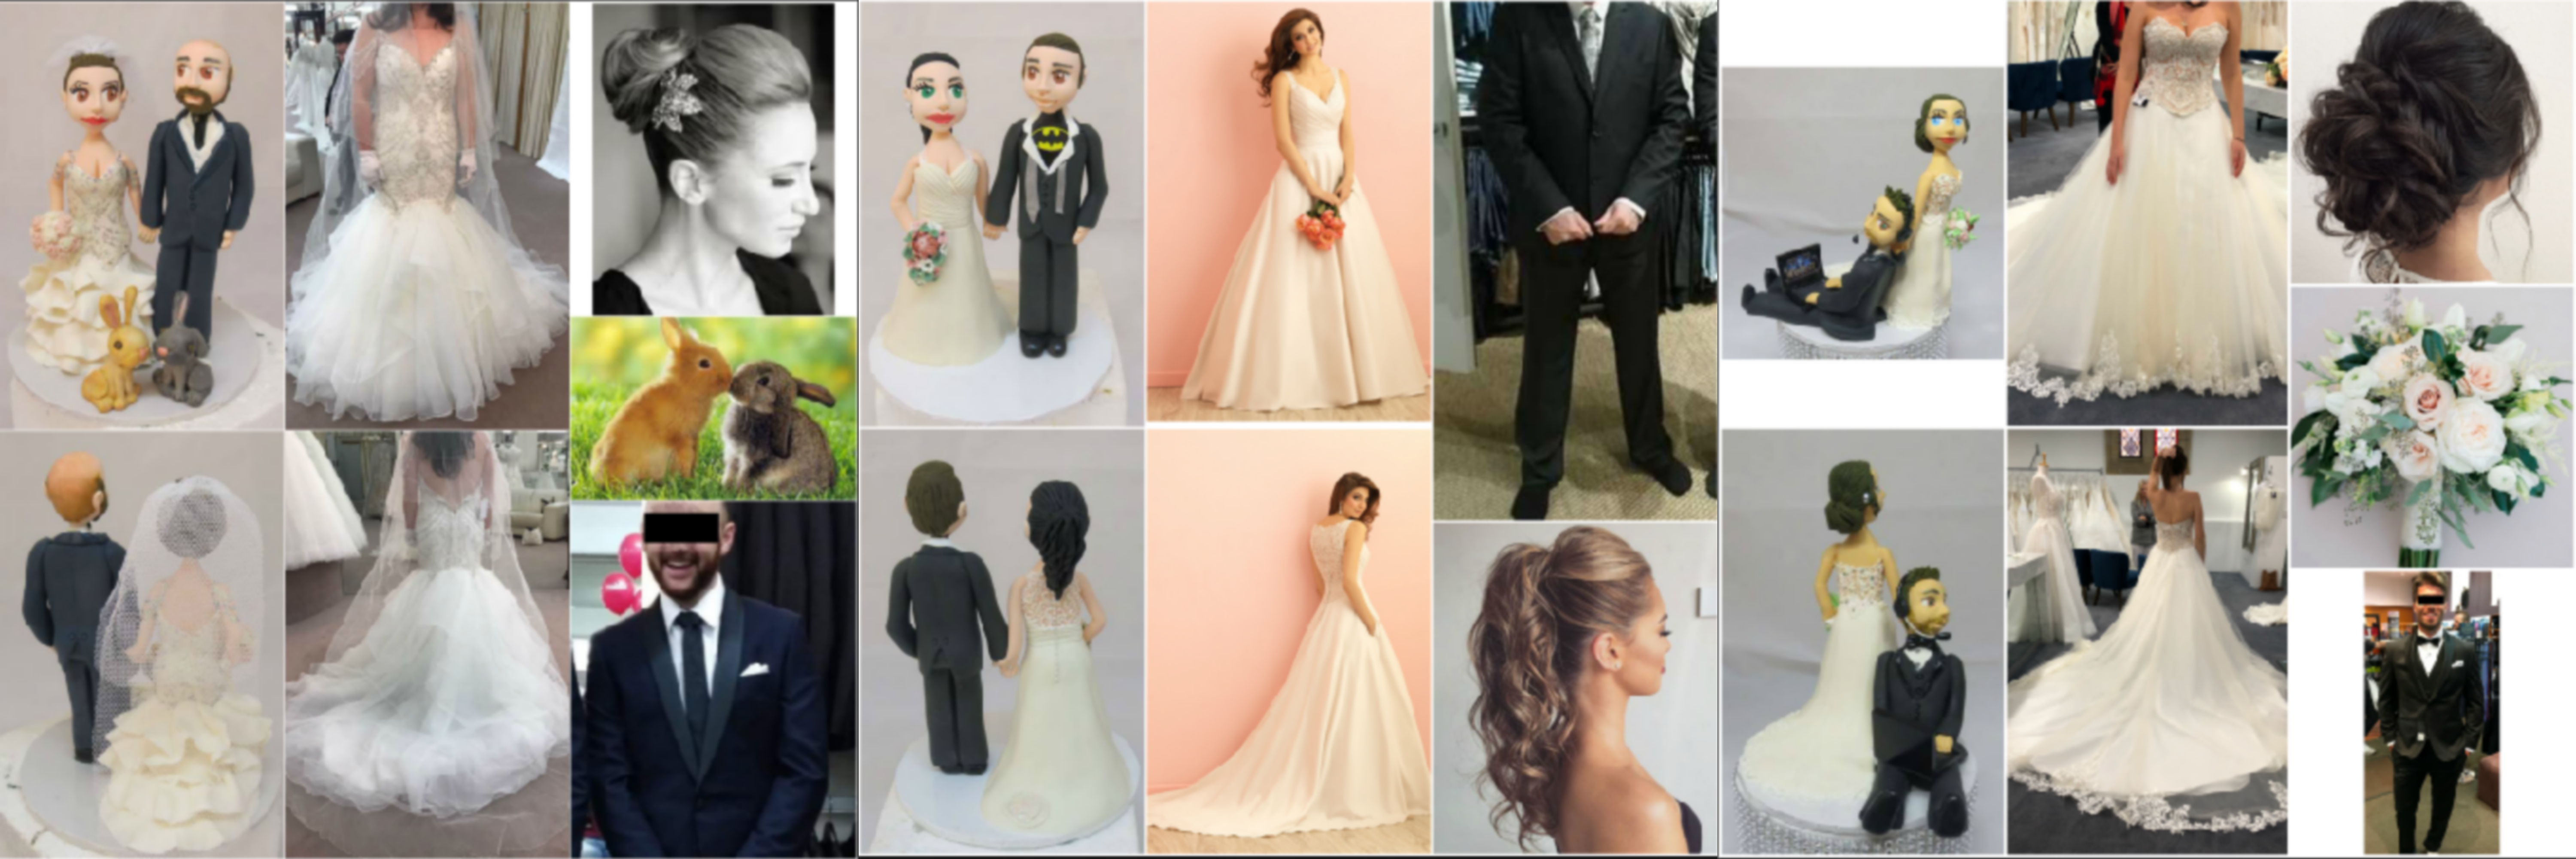 Personalised Bride and Groom figurines Cake Toppers